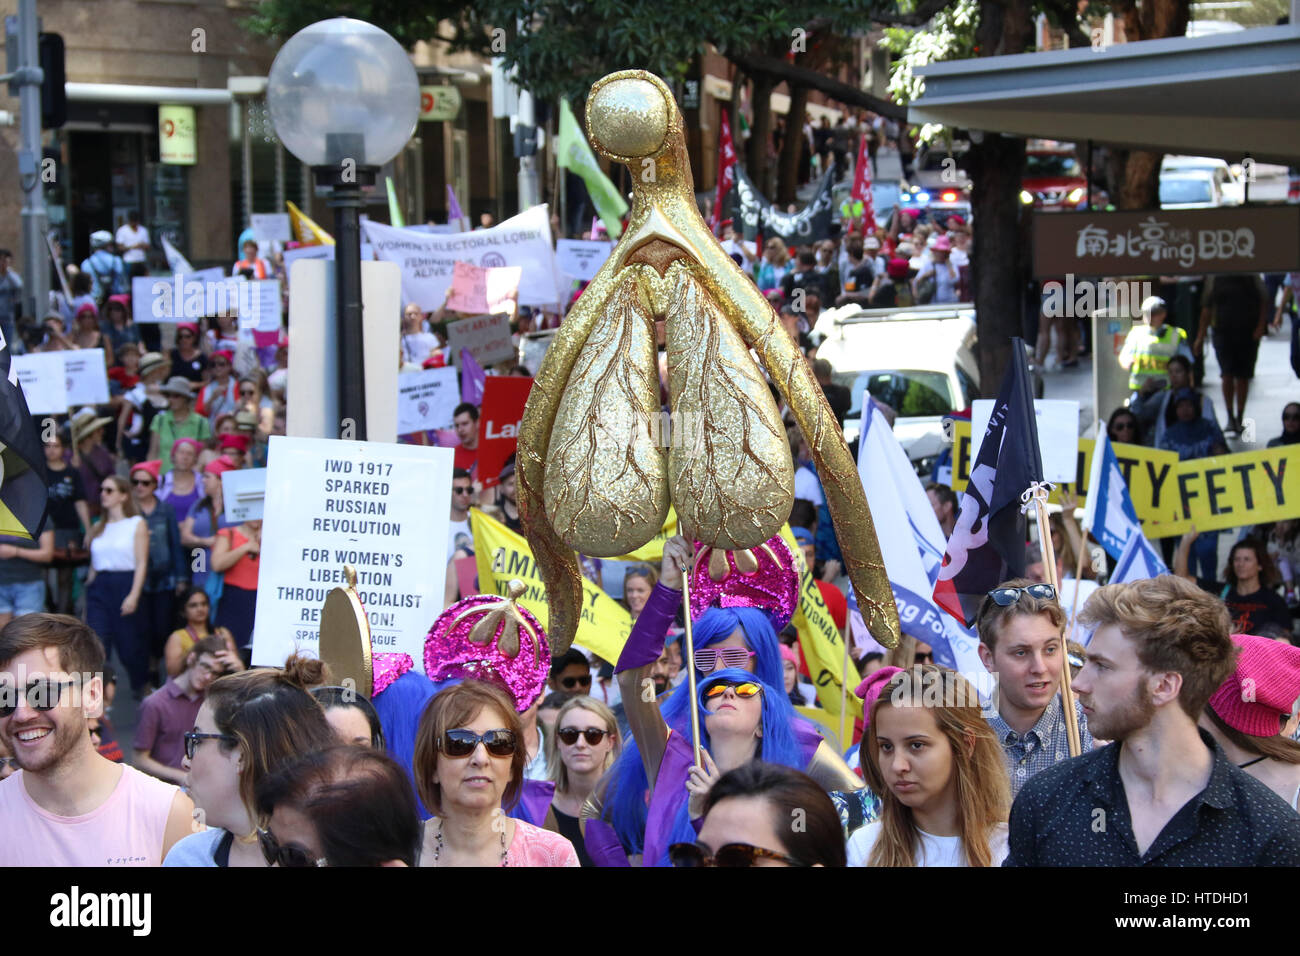 Sydney, Australia. 11th Mar, 2017. Unions NSW organised the 2017 Sydney International Women's Day March and - Stock Image